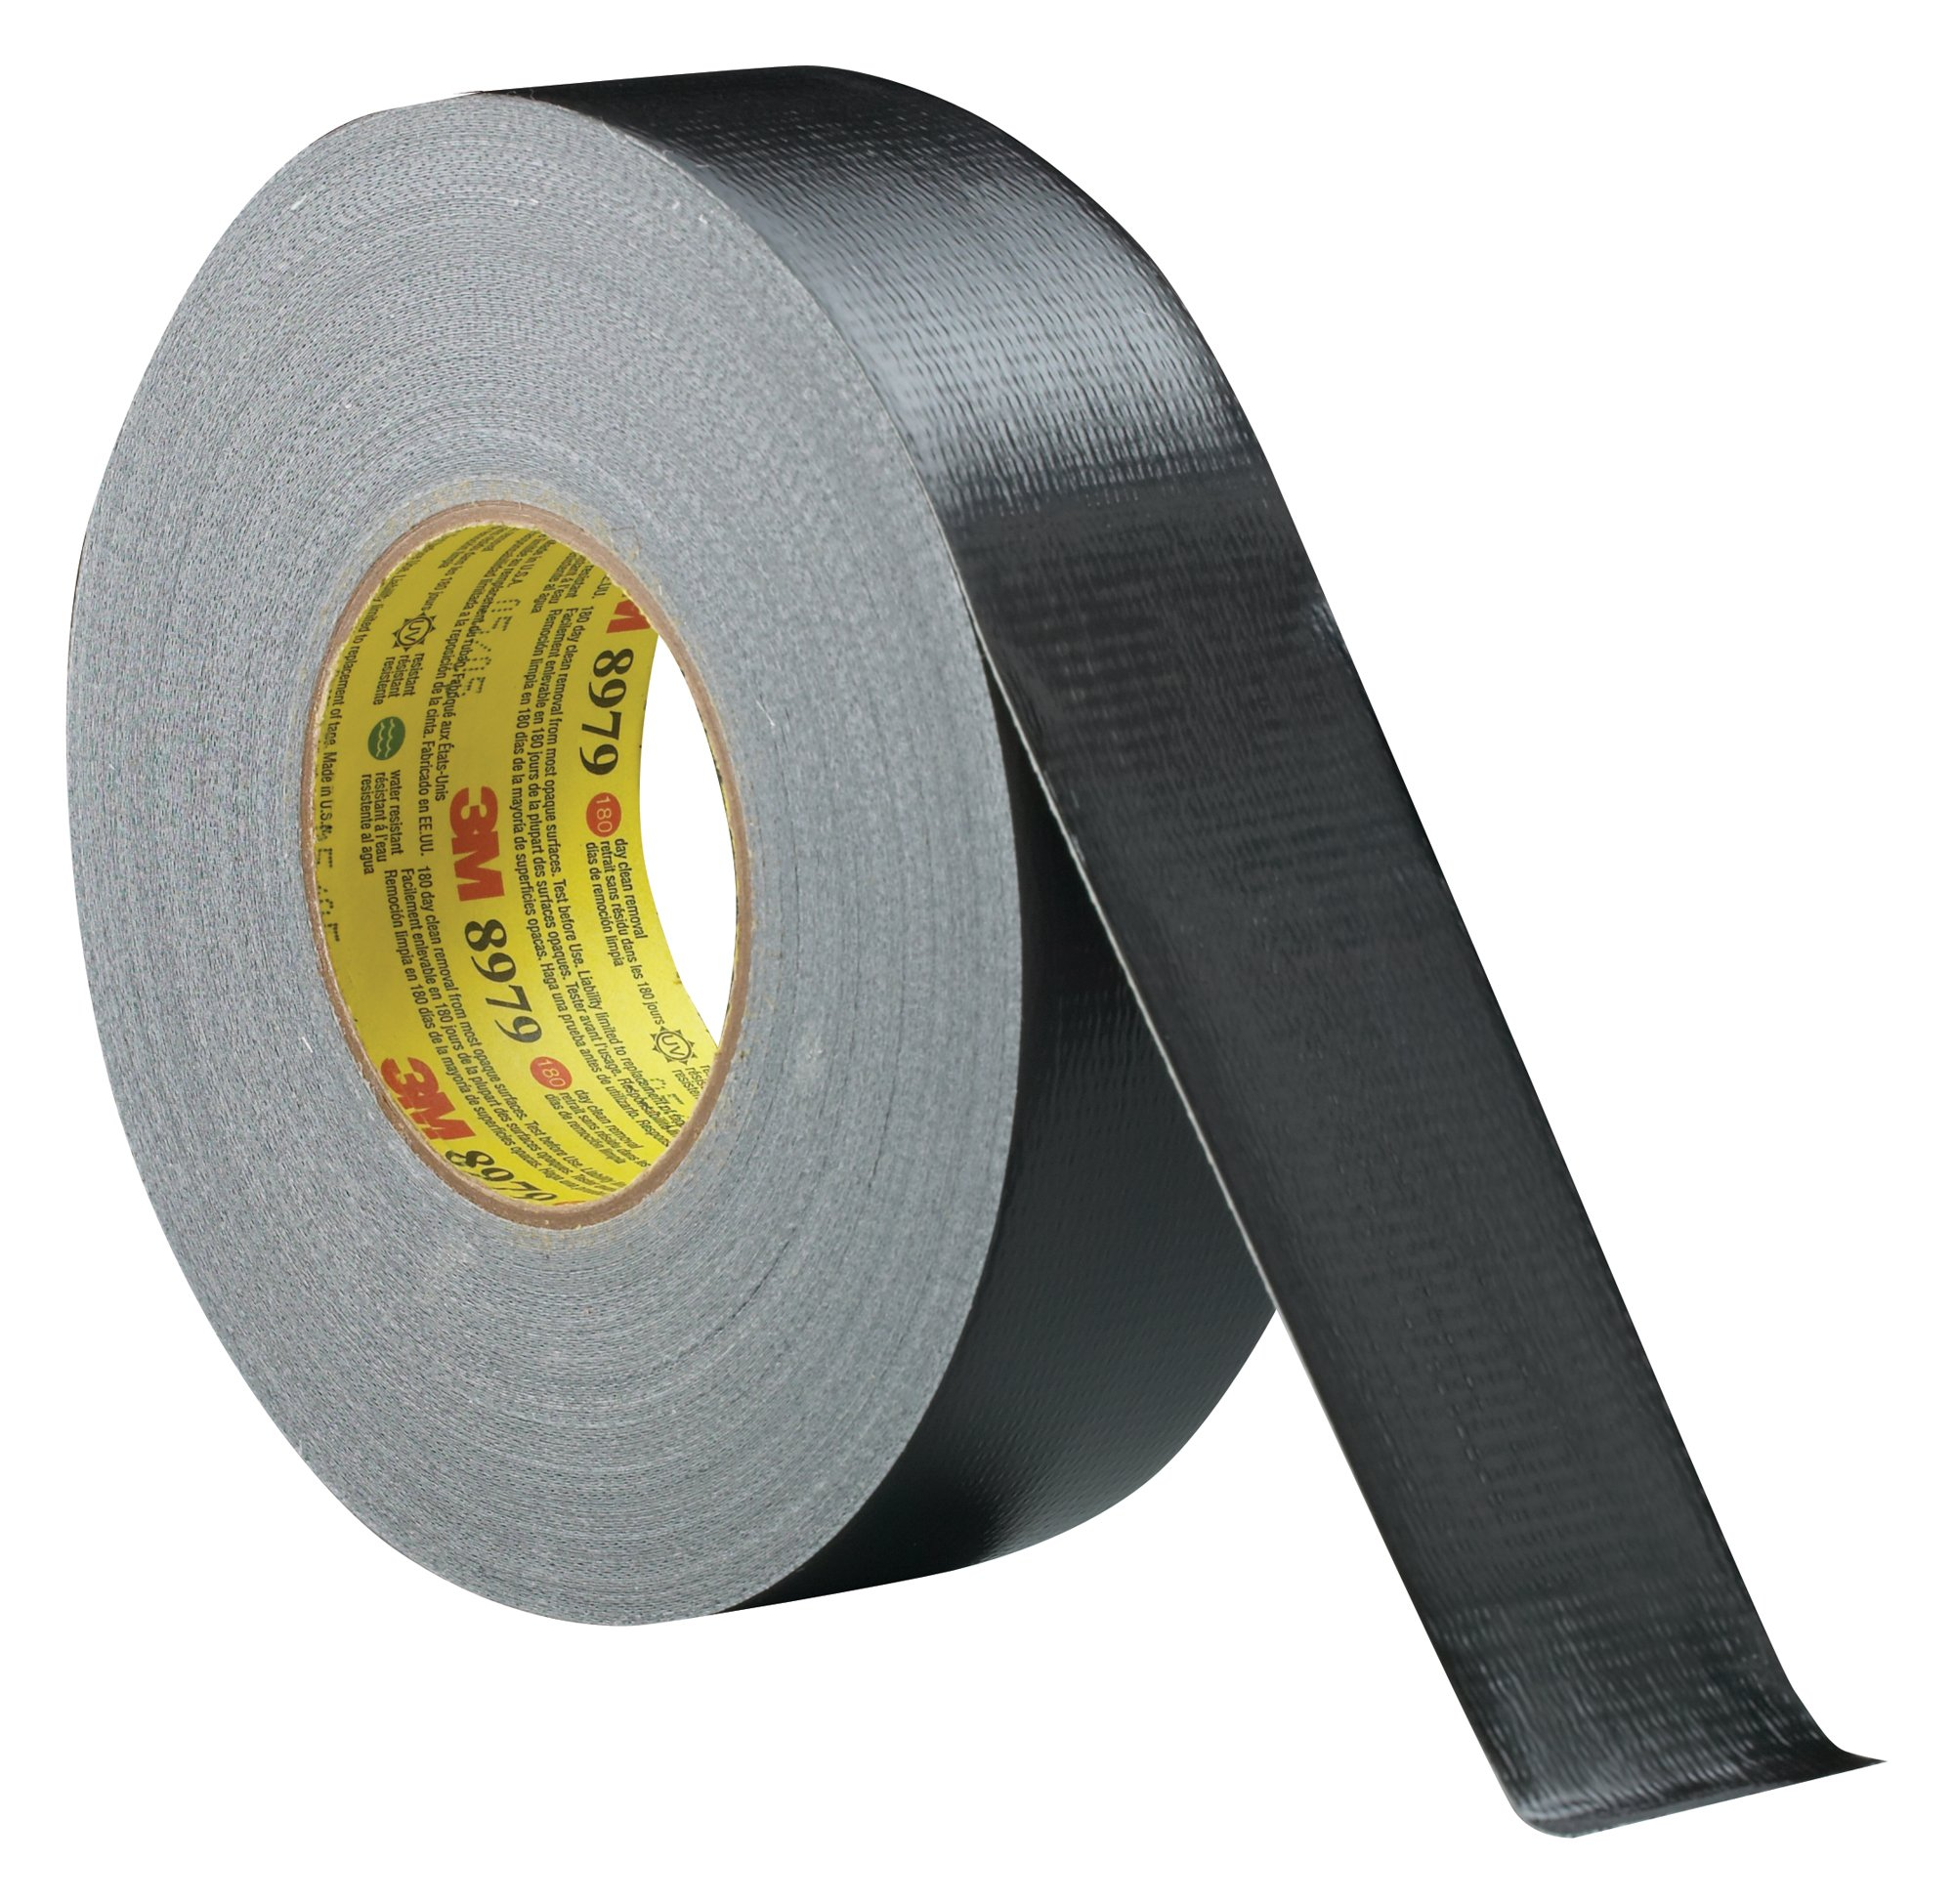 3M Performance Plus Duct Tape 8979 Black, 48 mm x 54.8 m, Conveniently Packaged (Pack of 1)